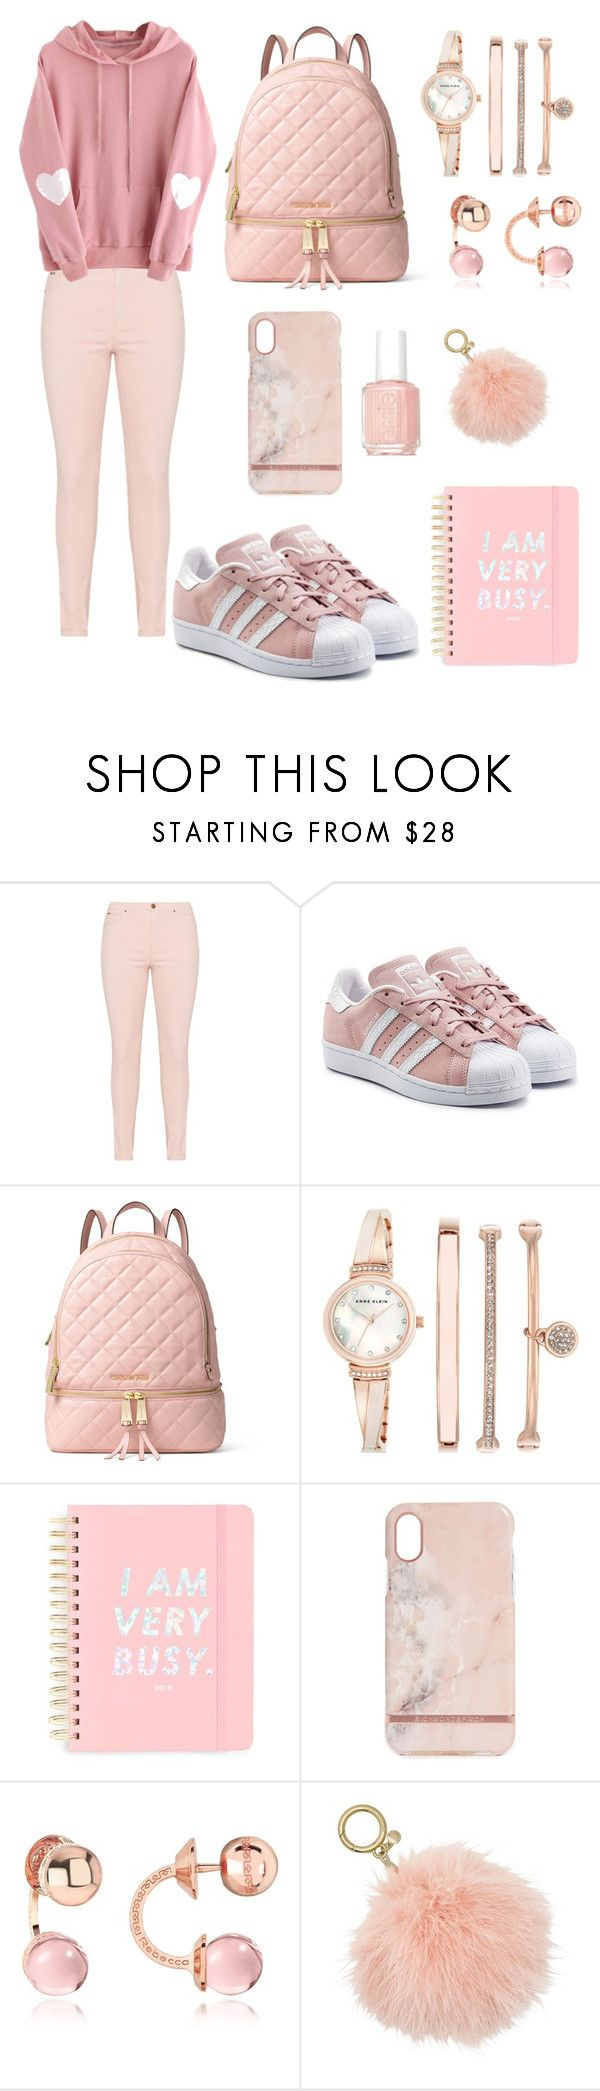 """THE PINK FRIDAY"" by amanda-turlaite ❤ liked on Polyvore featuring adidas Originals, MICHAEL Michael Kors, Anne Klein, ban.do, Richmond & Finch, Rebecca and Essie"